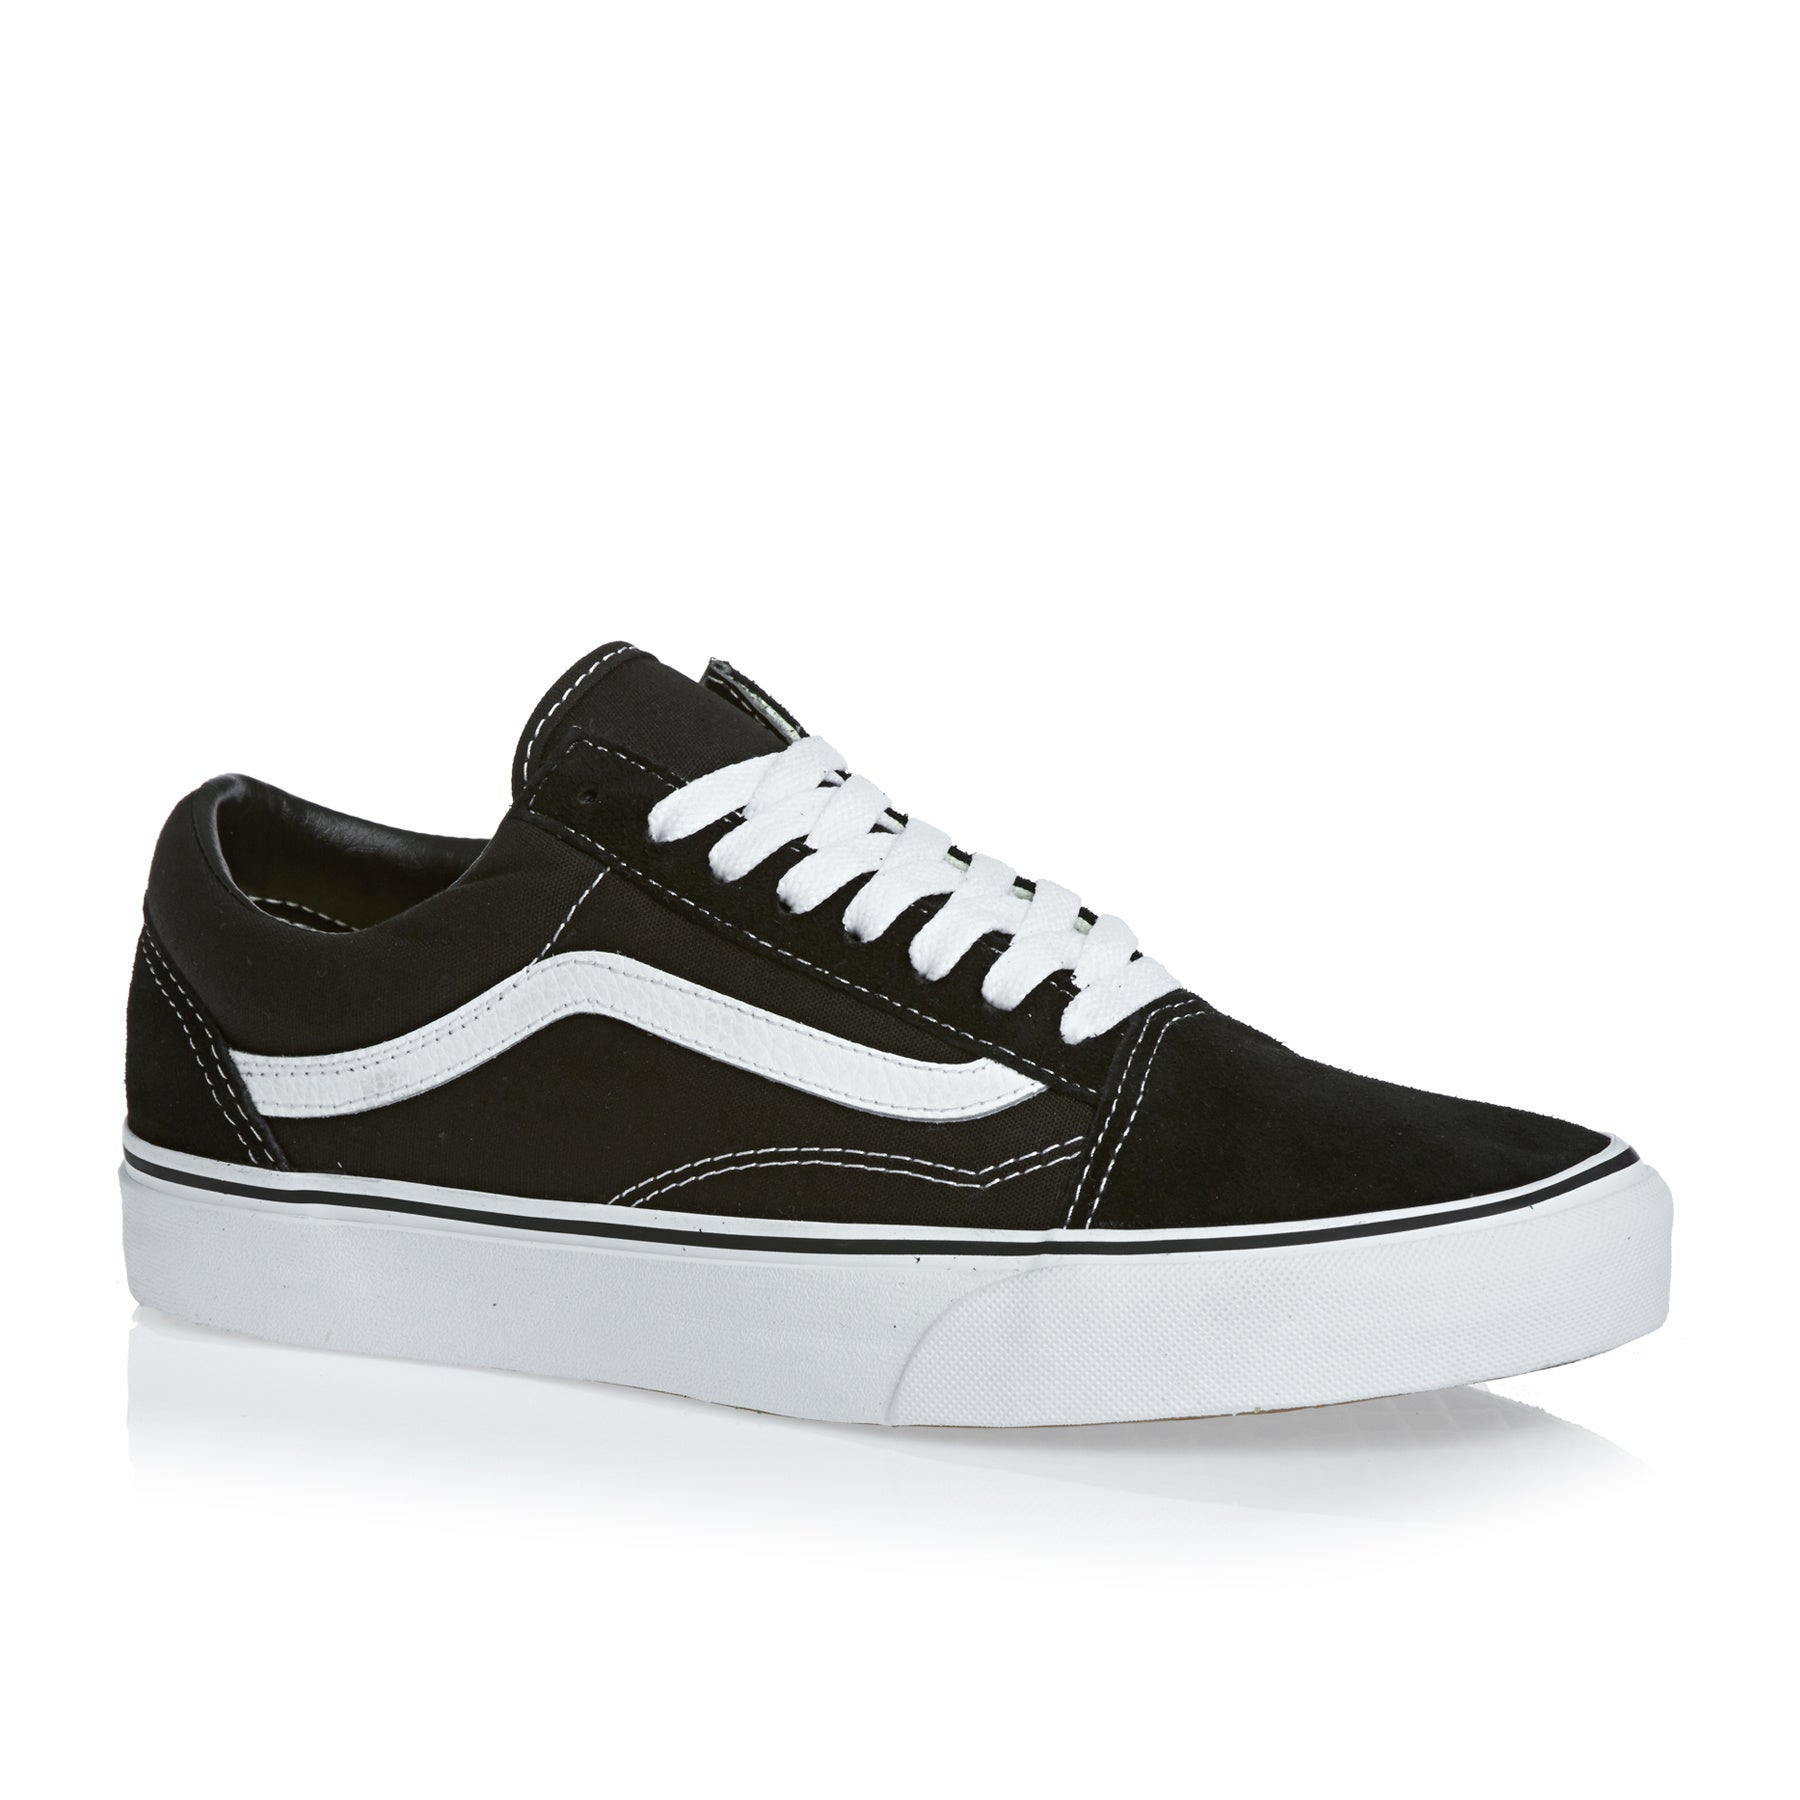 Vans Old Skool Shoes - Black White